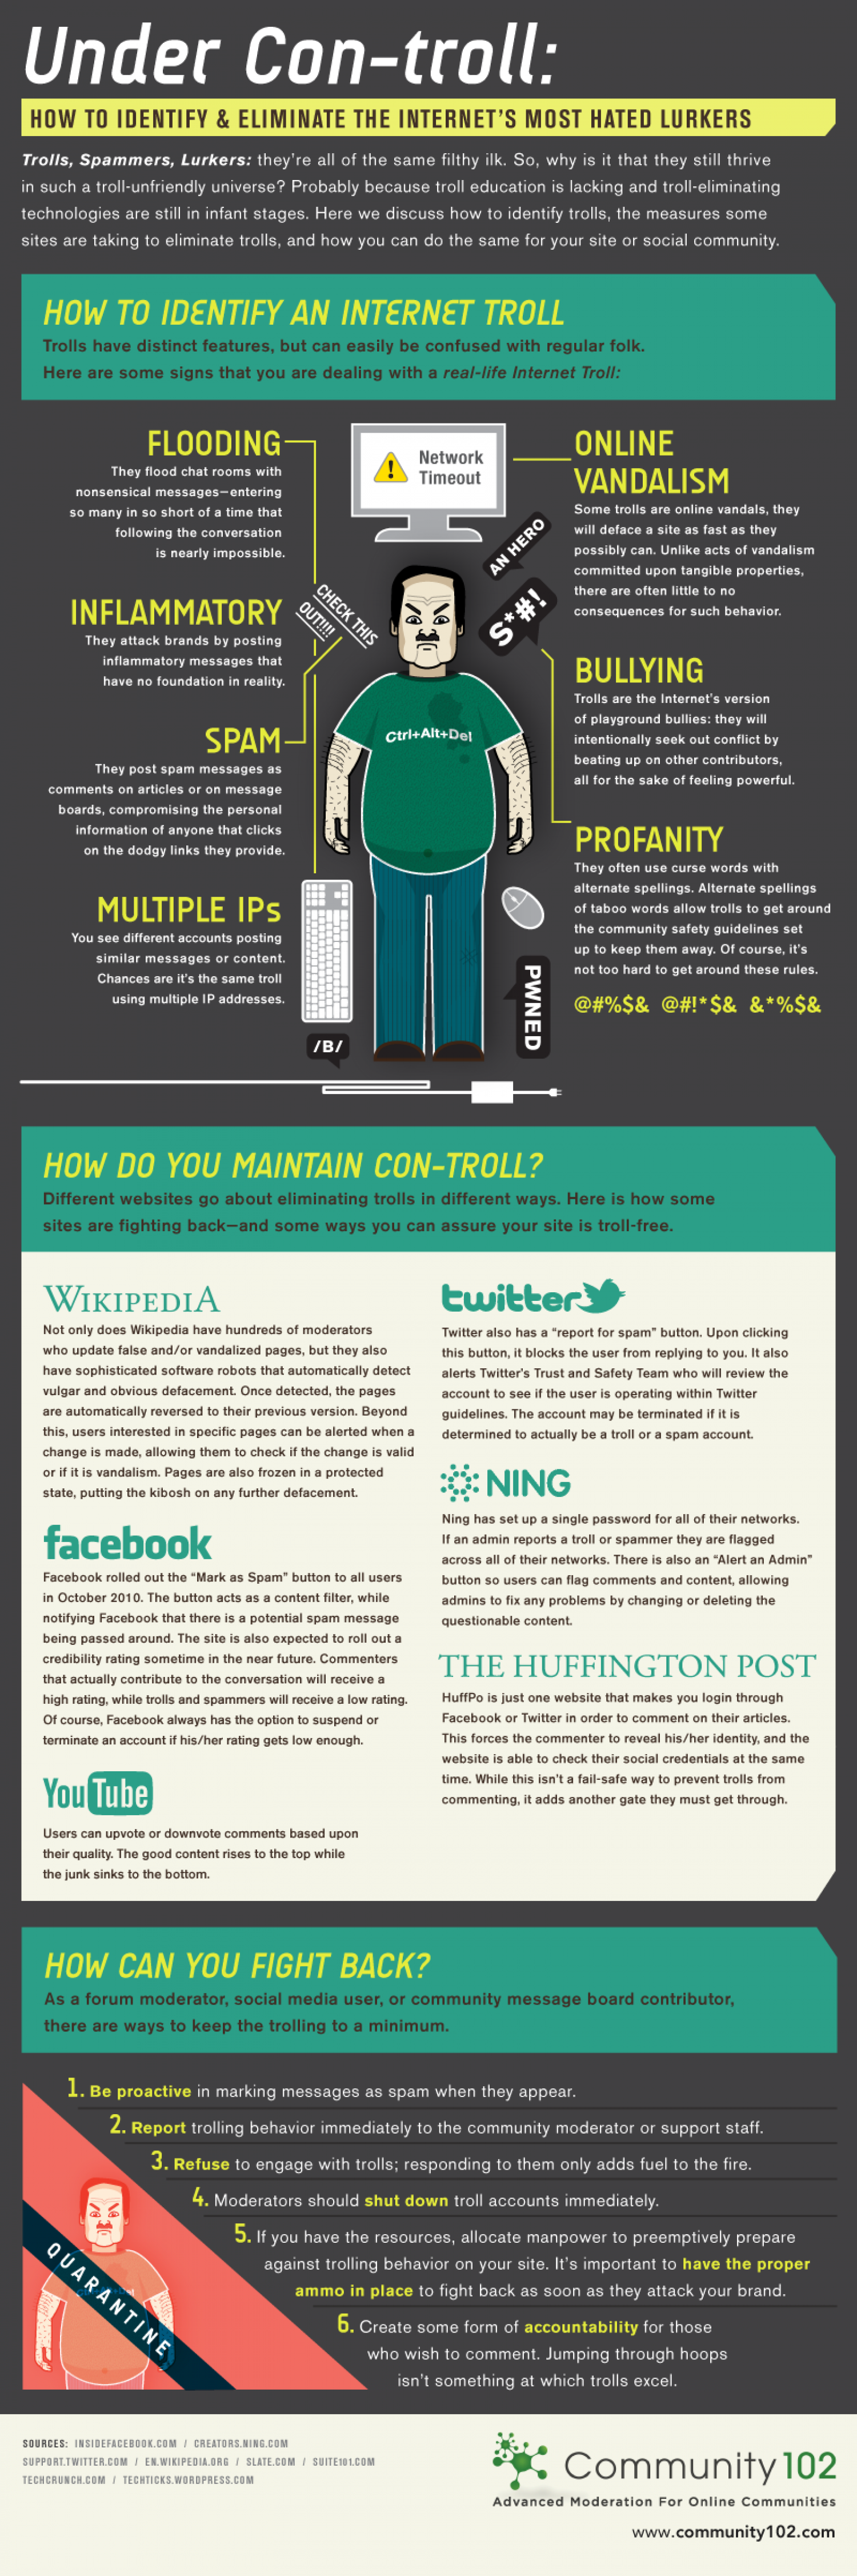 How To Identify An Internet Troll Infographic